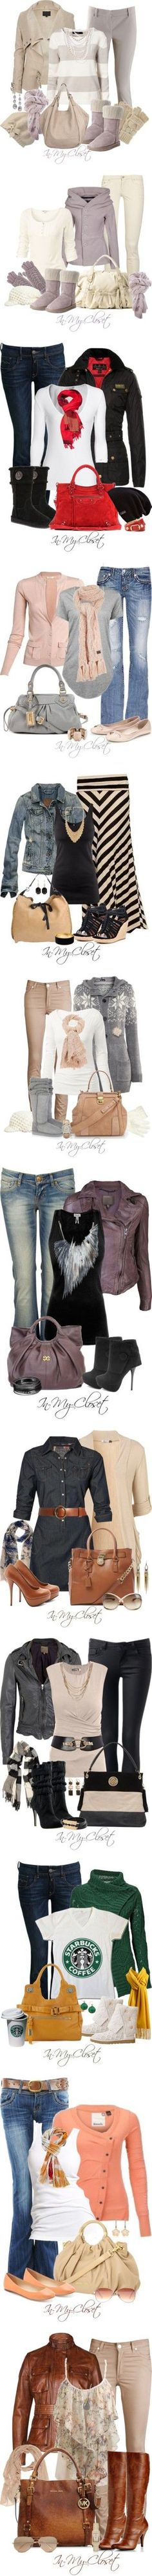 This is a comfy outfit featuring the UGG Classic Short Boot in Chestnut. Cyber Monday Ugg Boots This is a comfy outfit featuring the UGG Classic Short Boot in Chestnut.